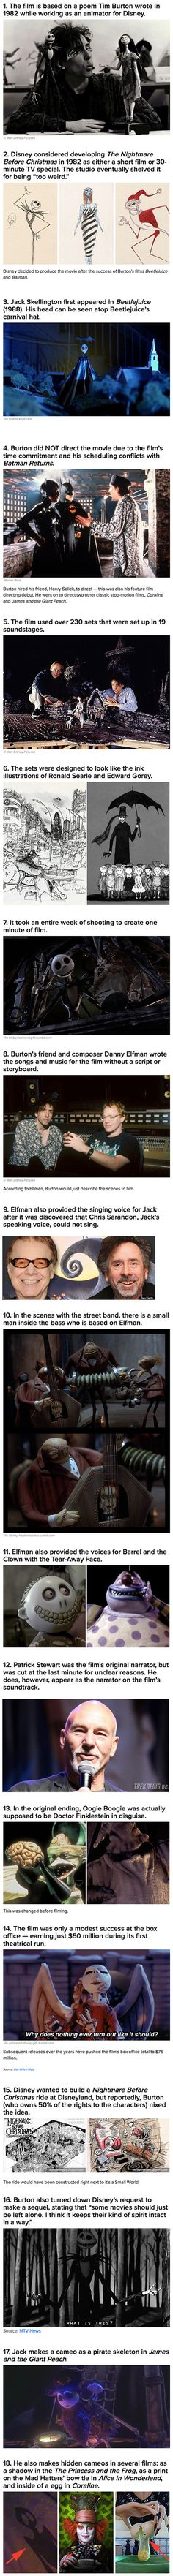 Here are some interesting things you probably did not know about The Nightmare Before Christmas.